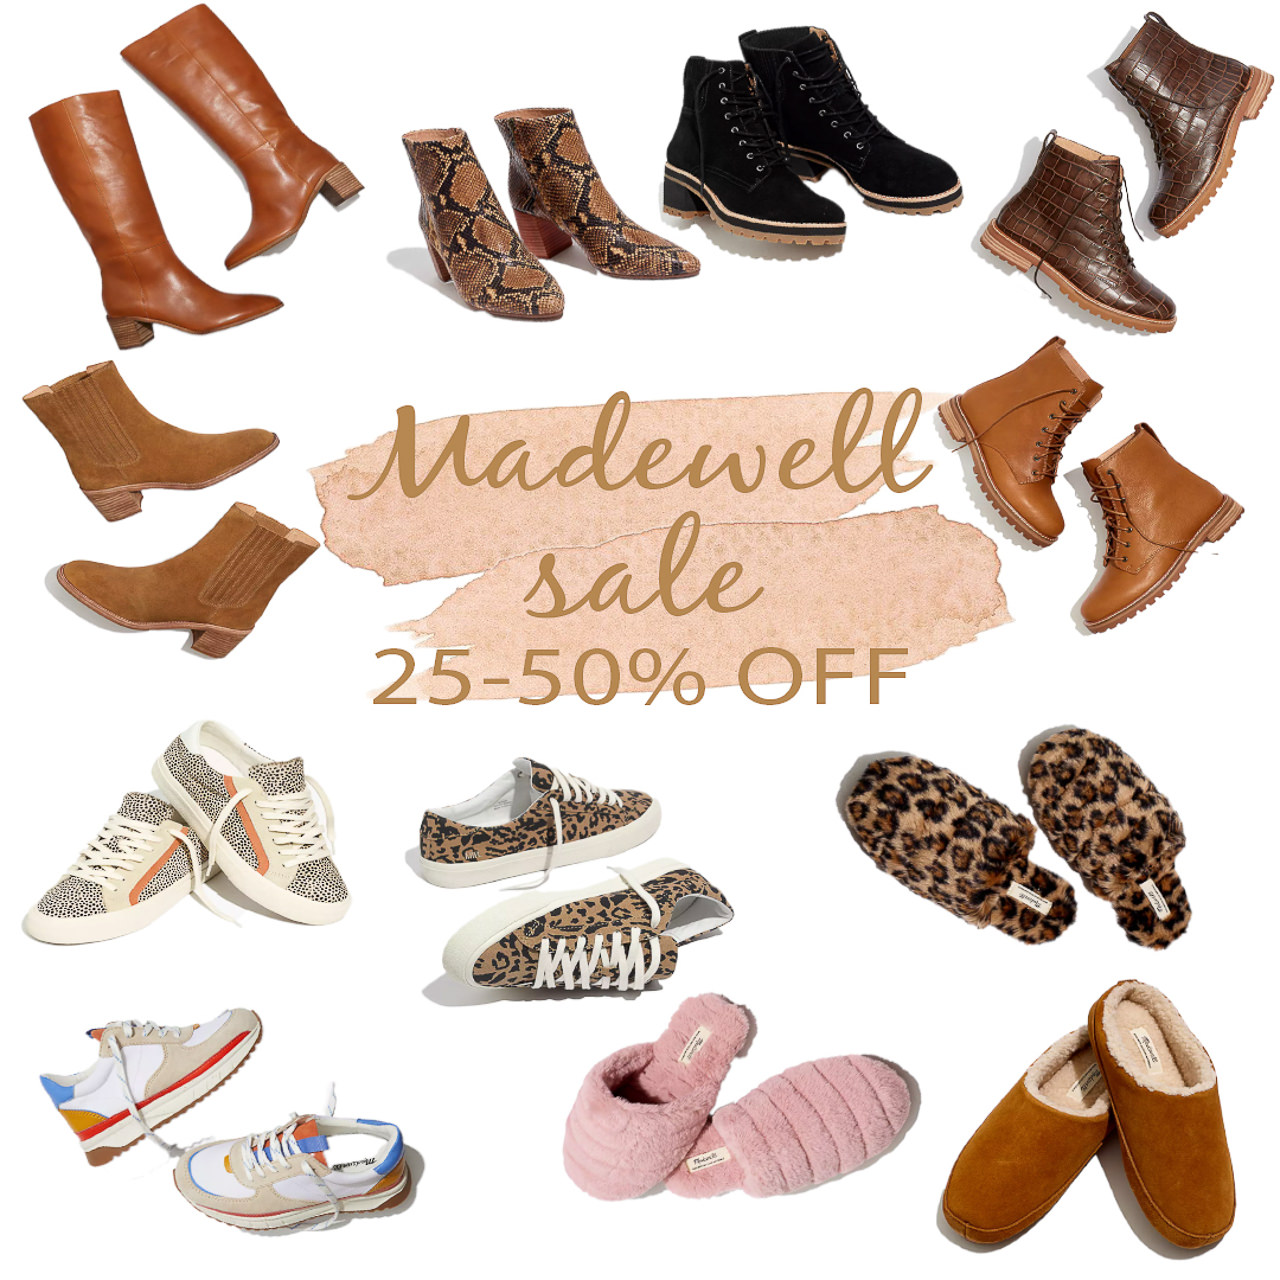 madewell sale shoes